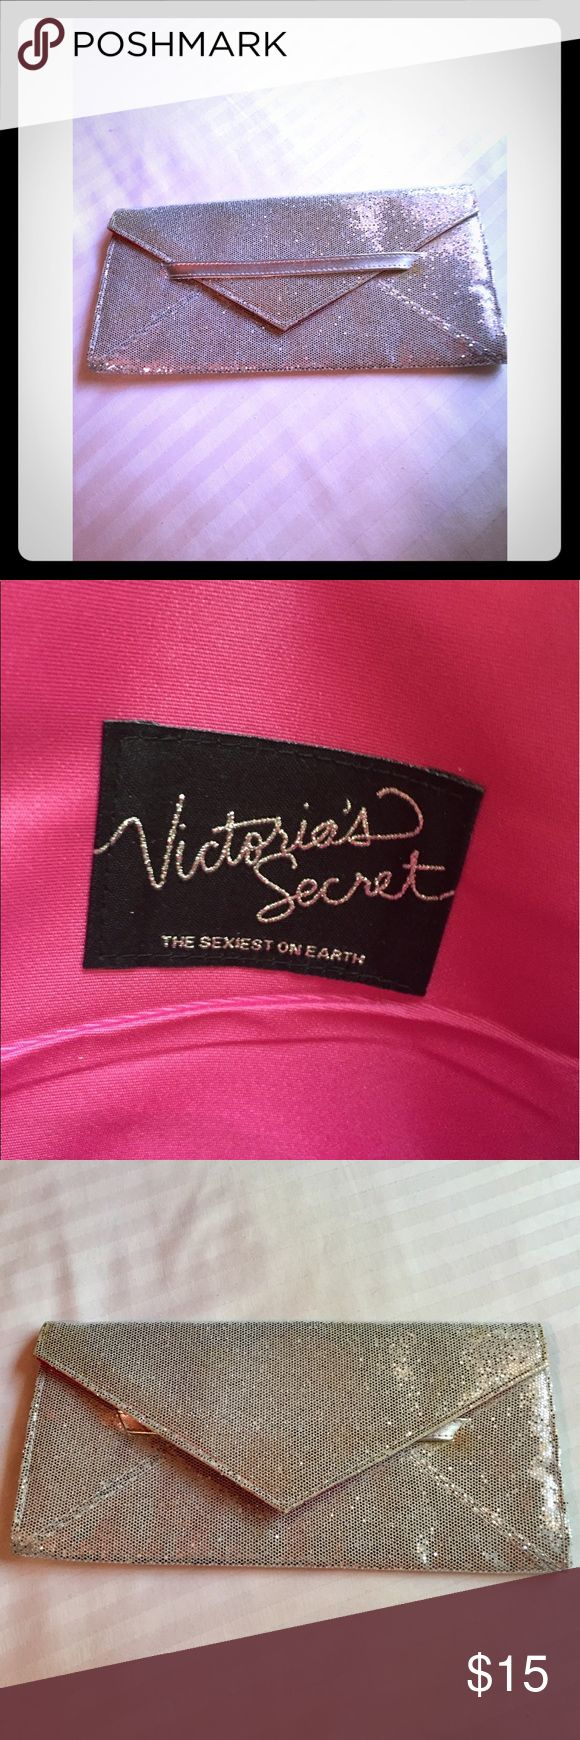 Victoria's Secret Sparkly Clutch! Brand new, and totally adorable. Great for a night out! Victoria's Secret Bags Clutches & Wristlets